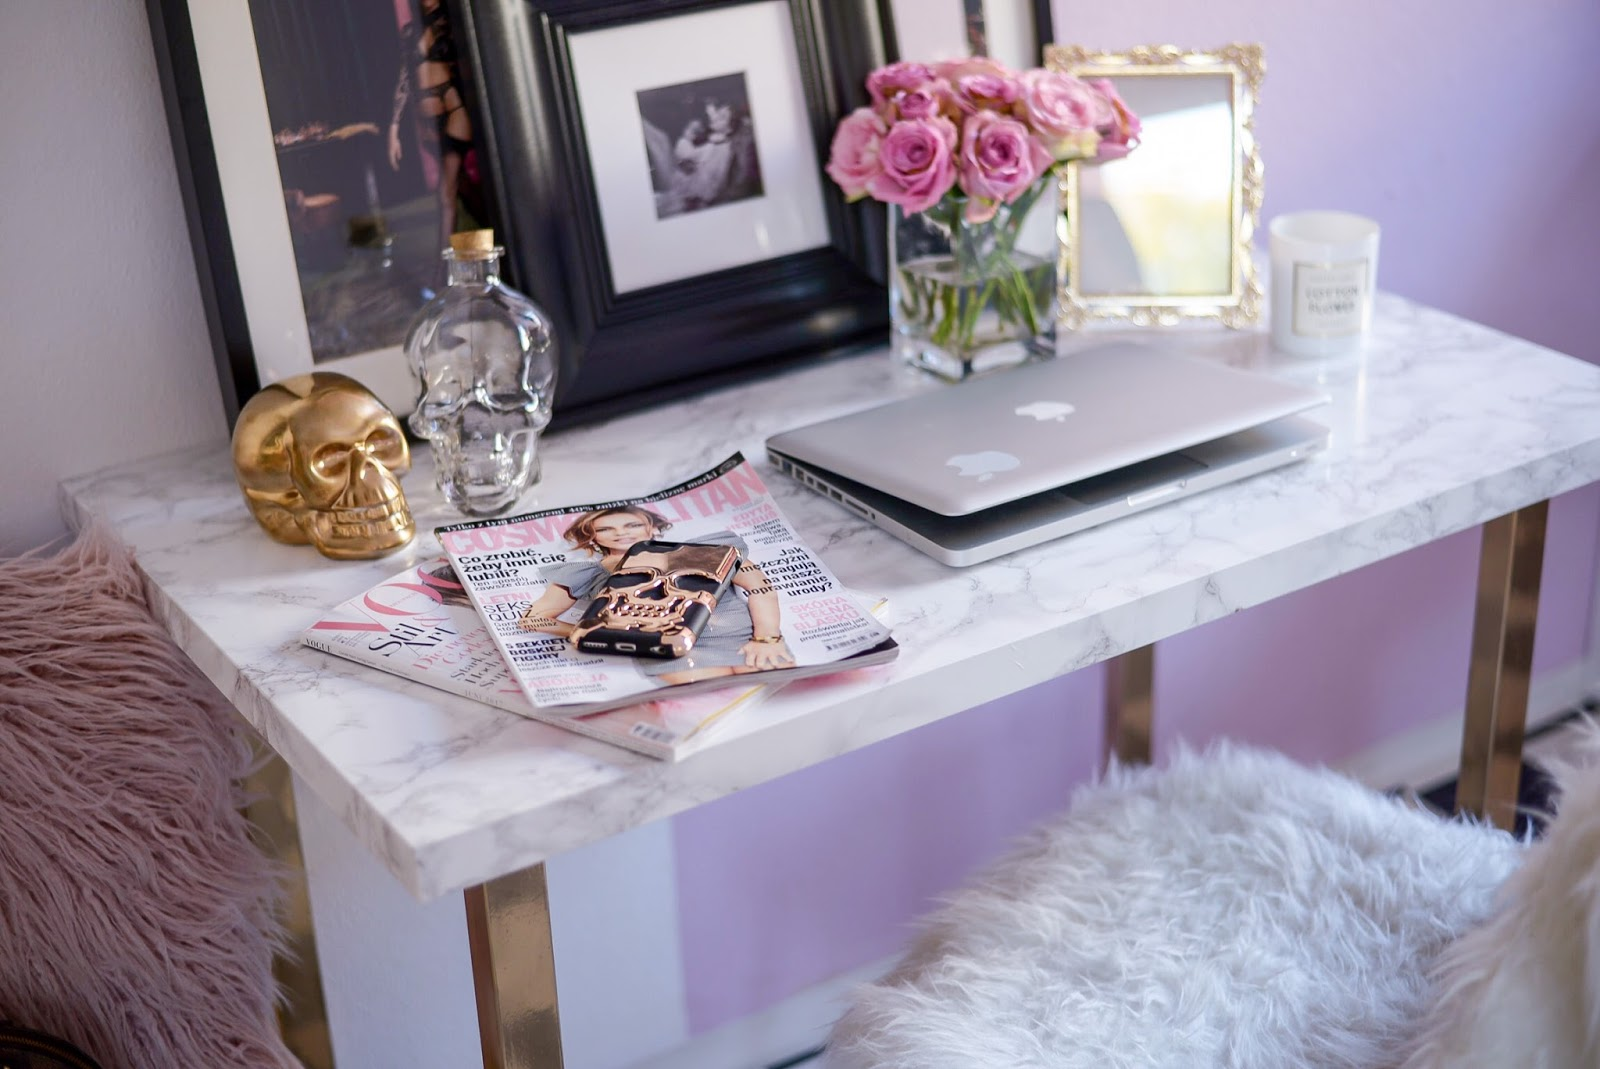 diy marble table from ikea_ikea hacks_ikea gold hacks_marble table hacks_gold spray paint hacks